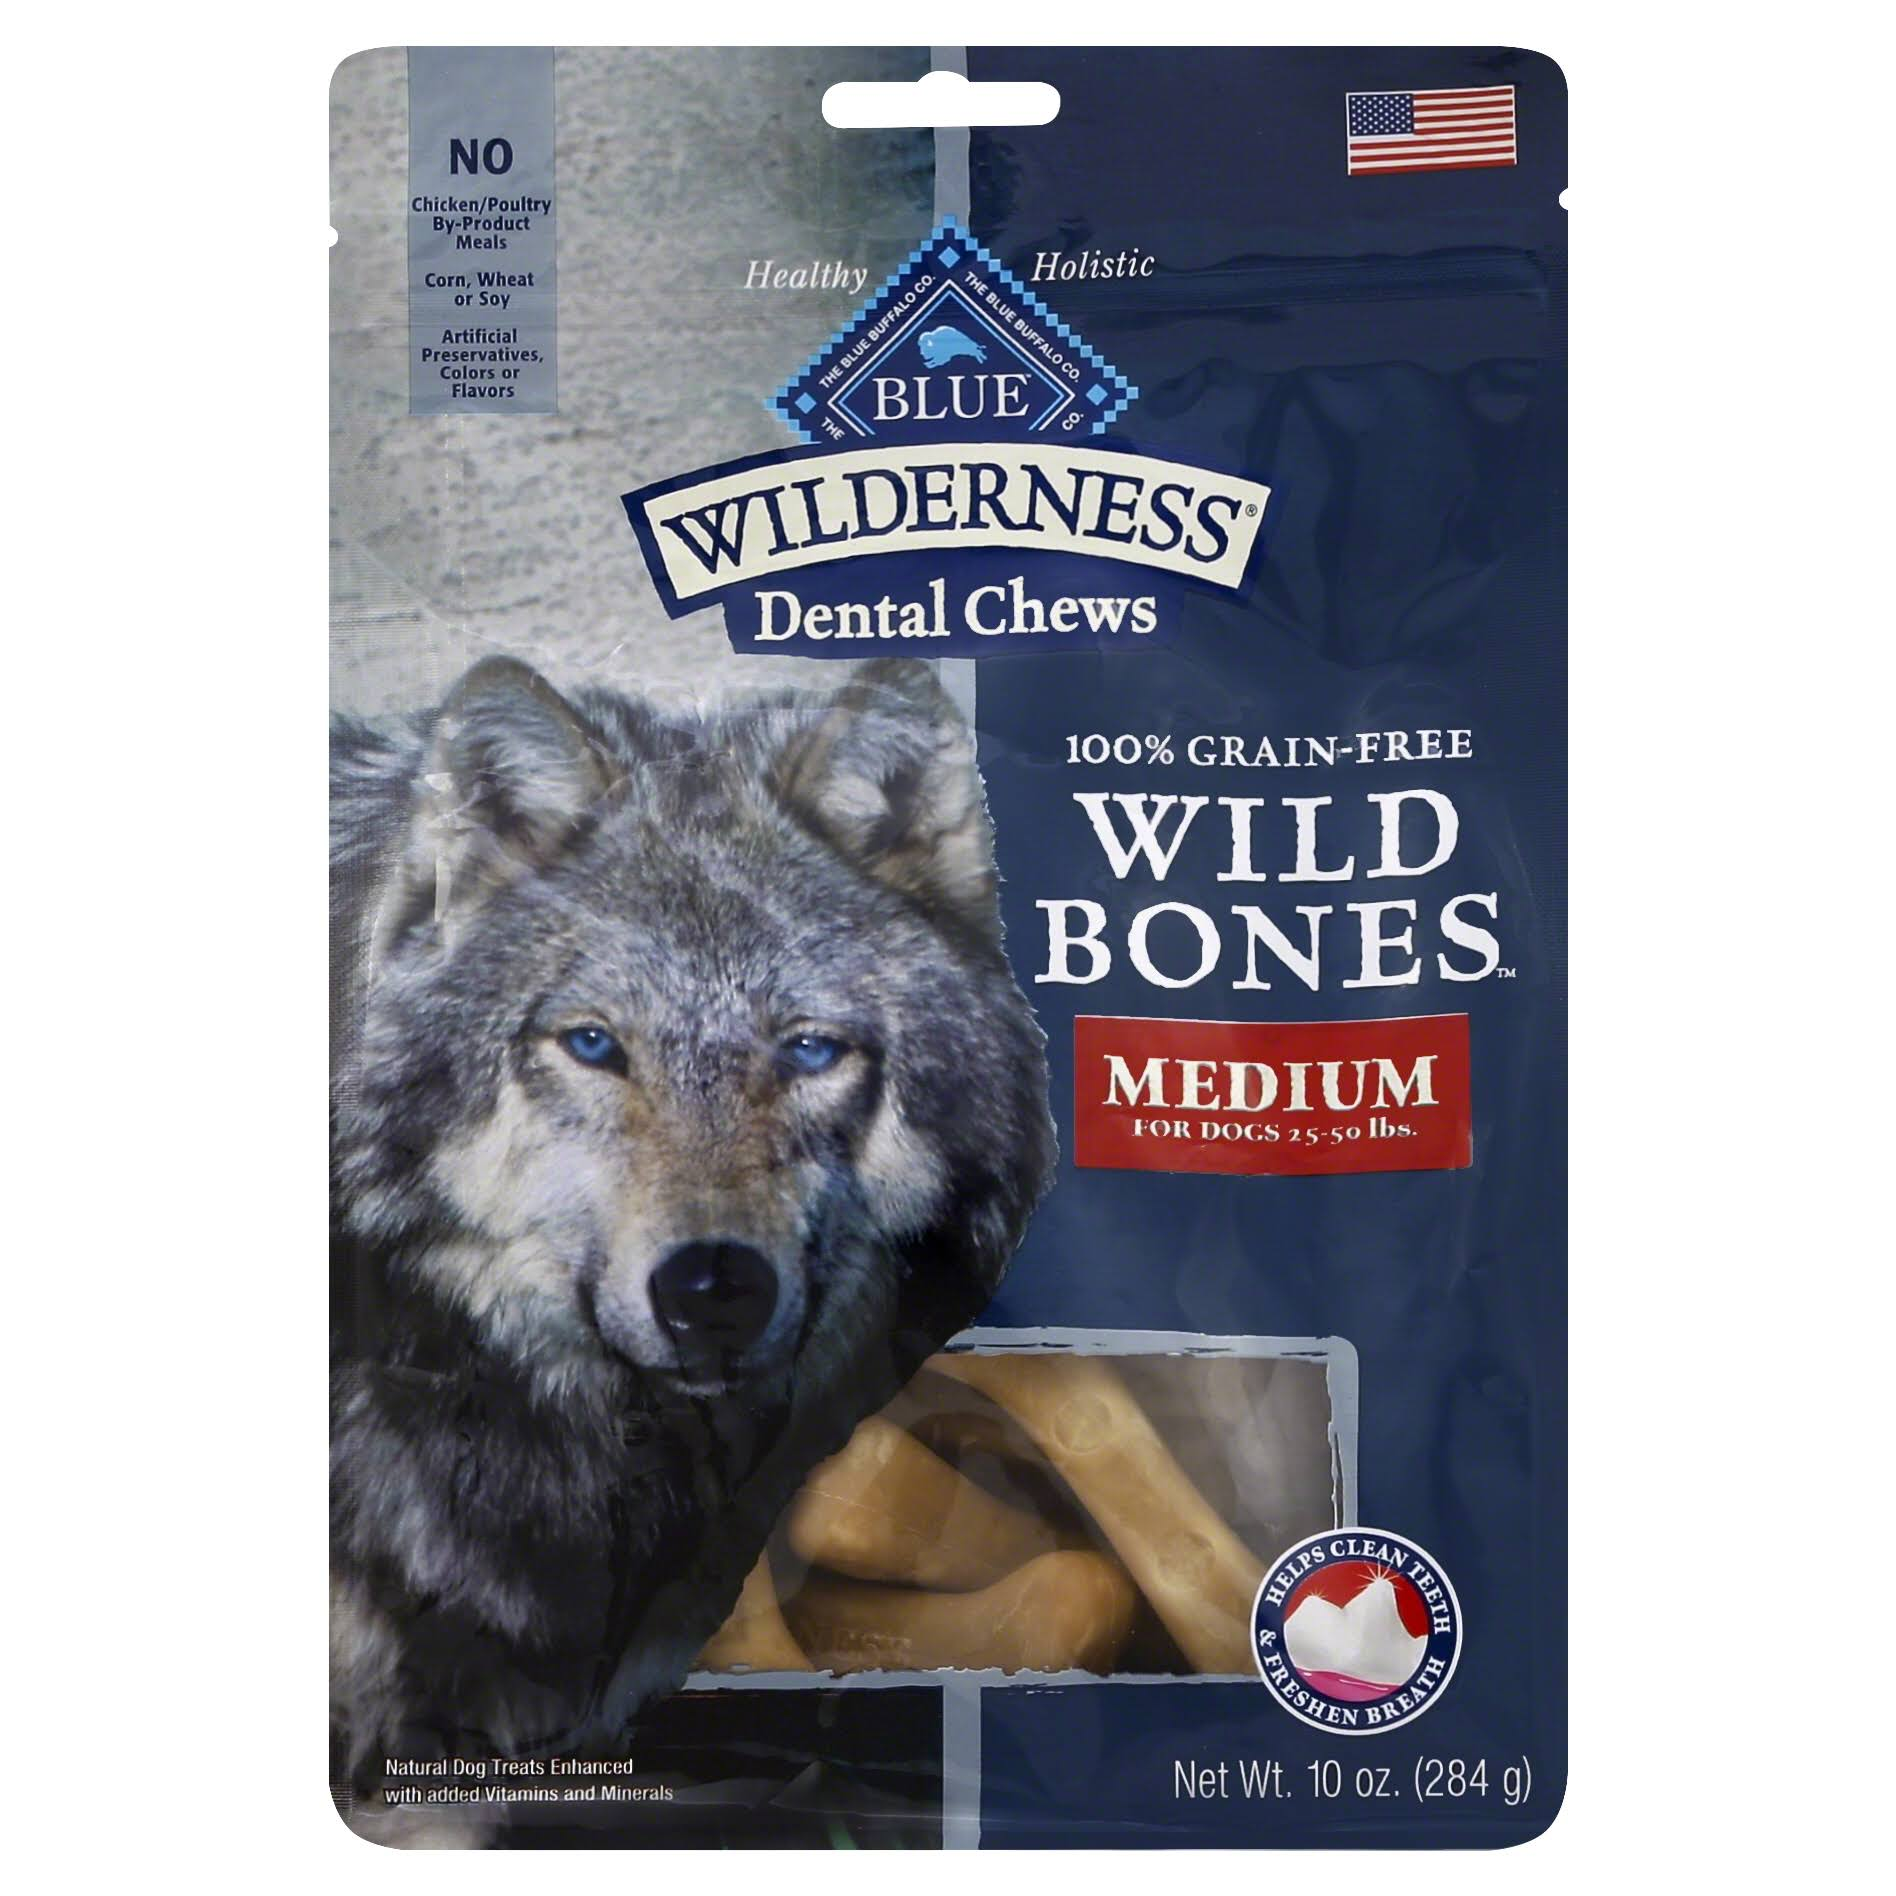 Blue Buffalo Wilderness Medium Wild Bones Dog Dental Chews - 10oz